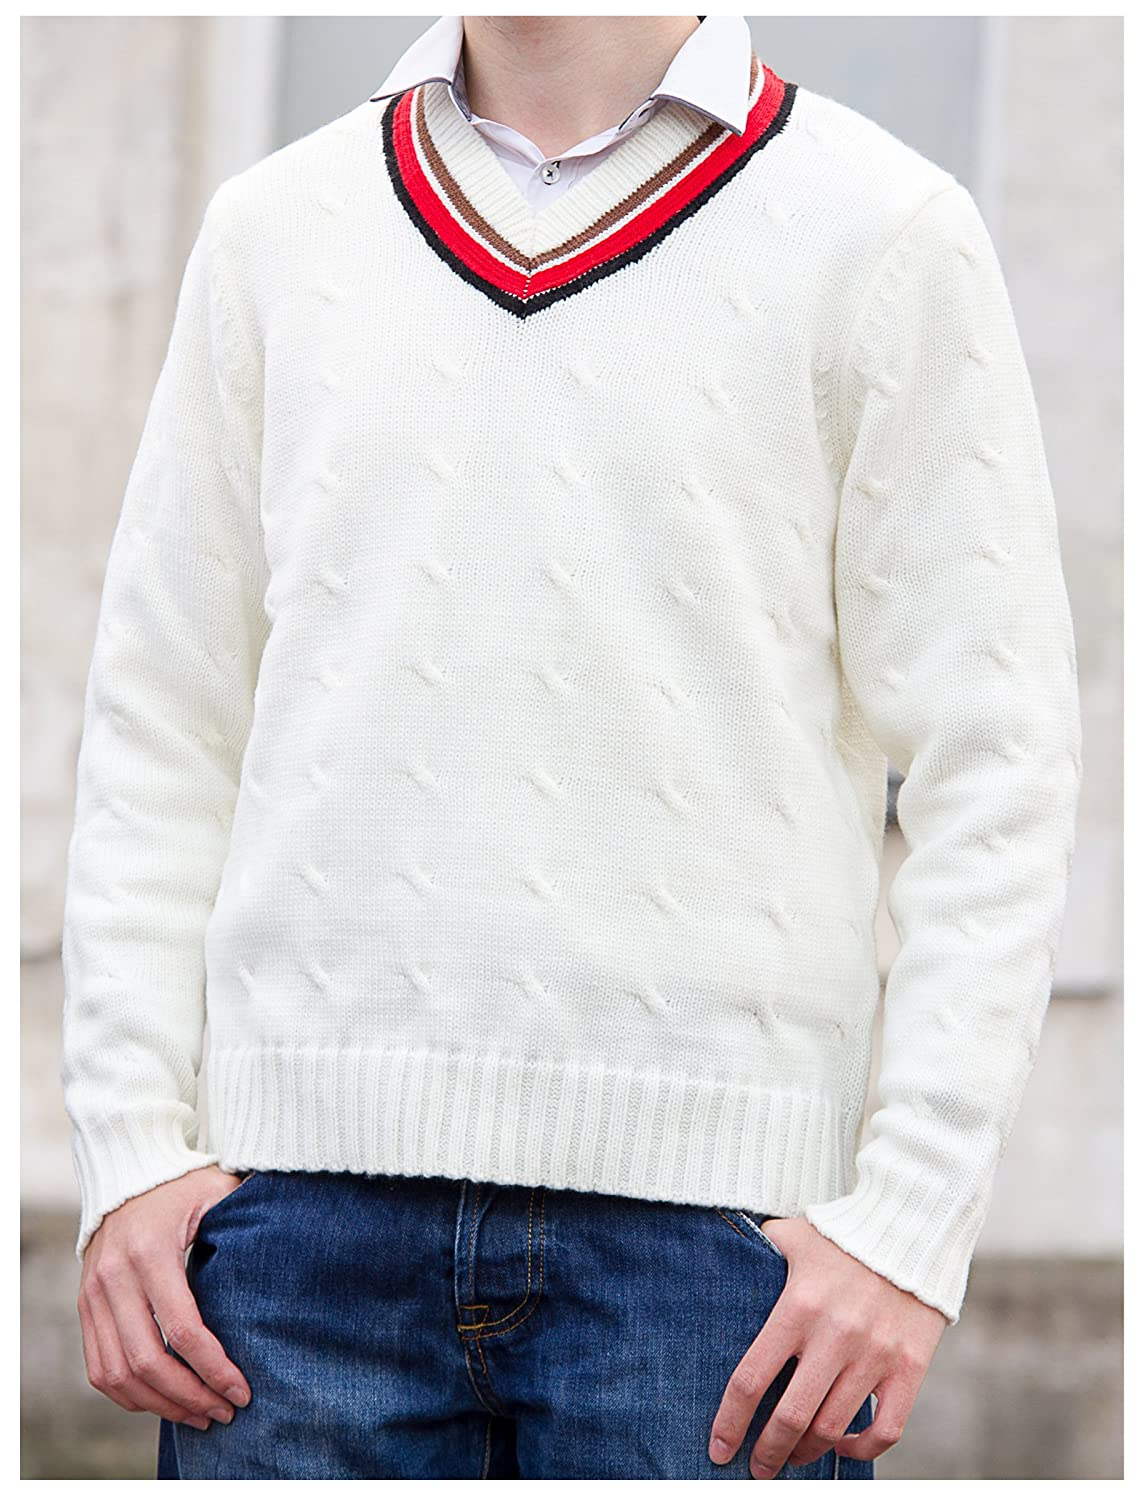 Fifth Doctor (Peter Davison) Sweater - Official BBC Doctor Who 5th Doctor Cricket Jumper by LOVARZI